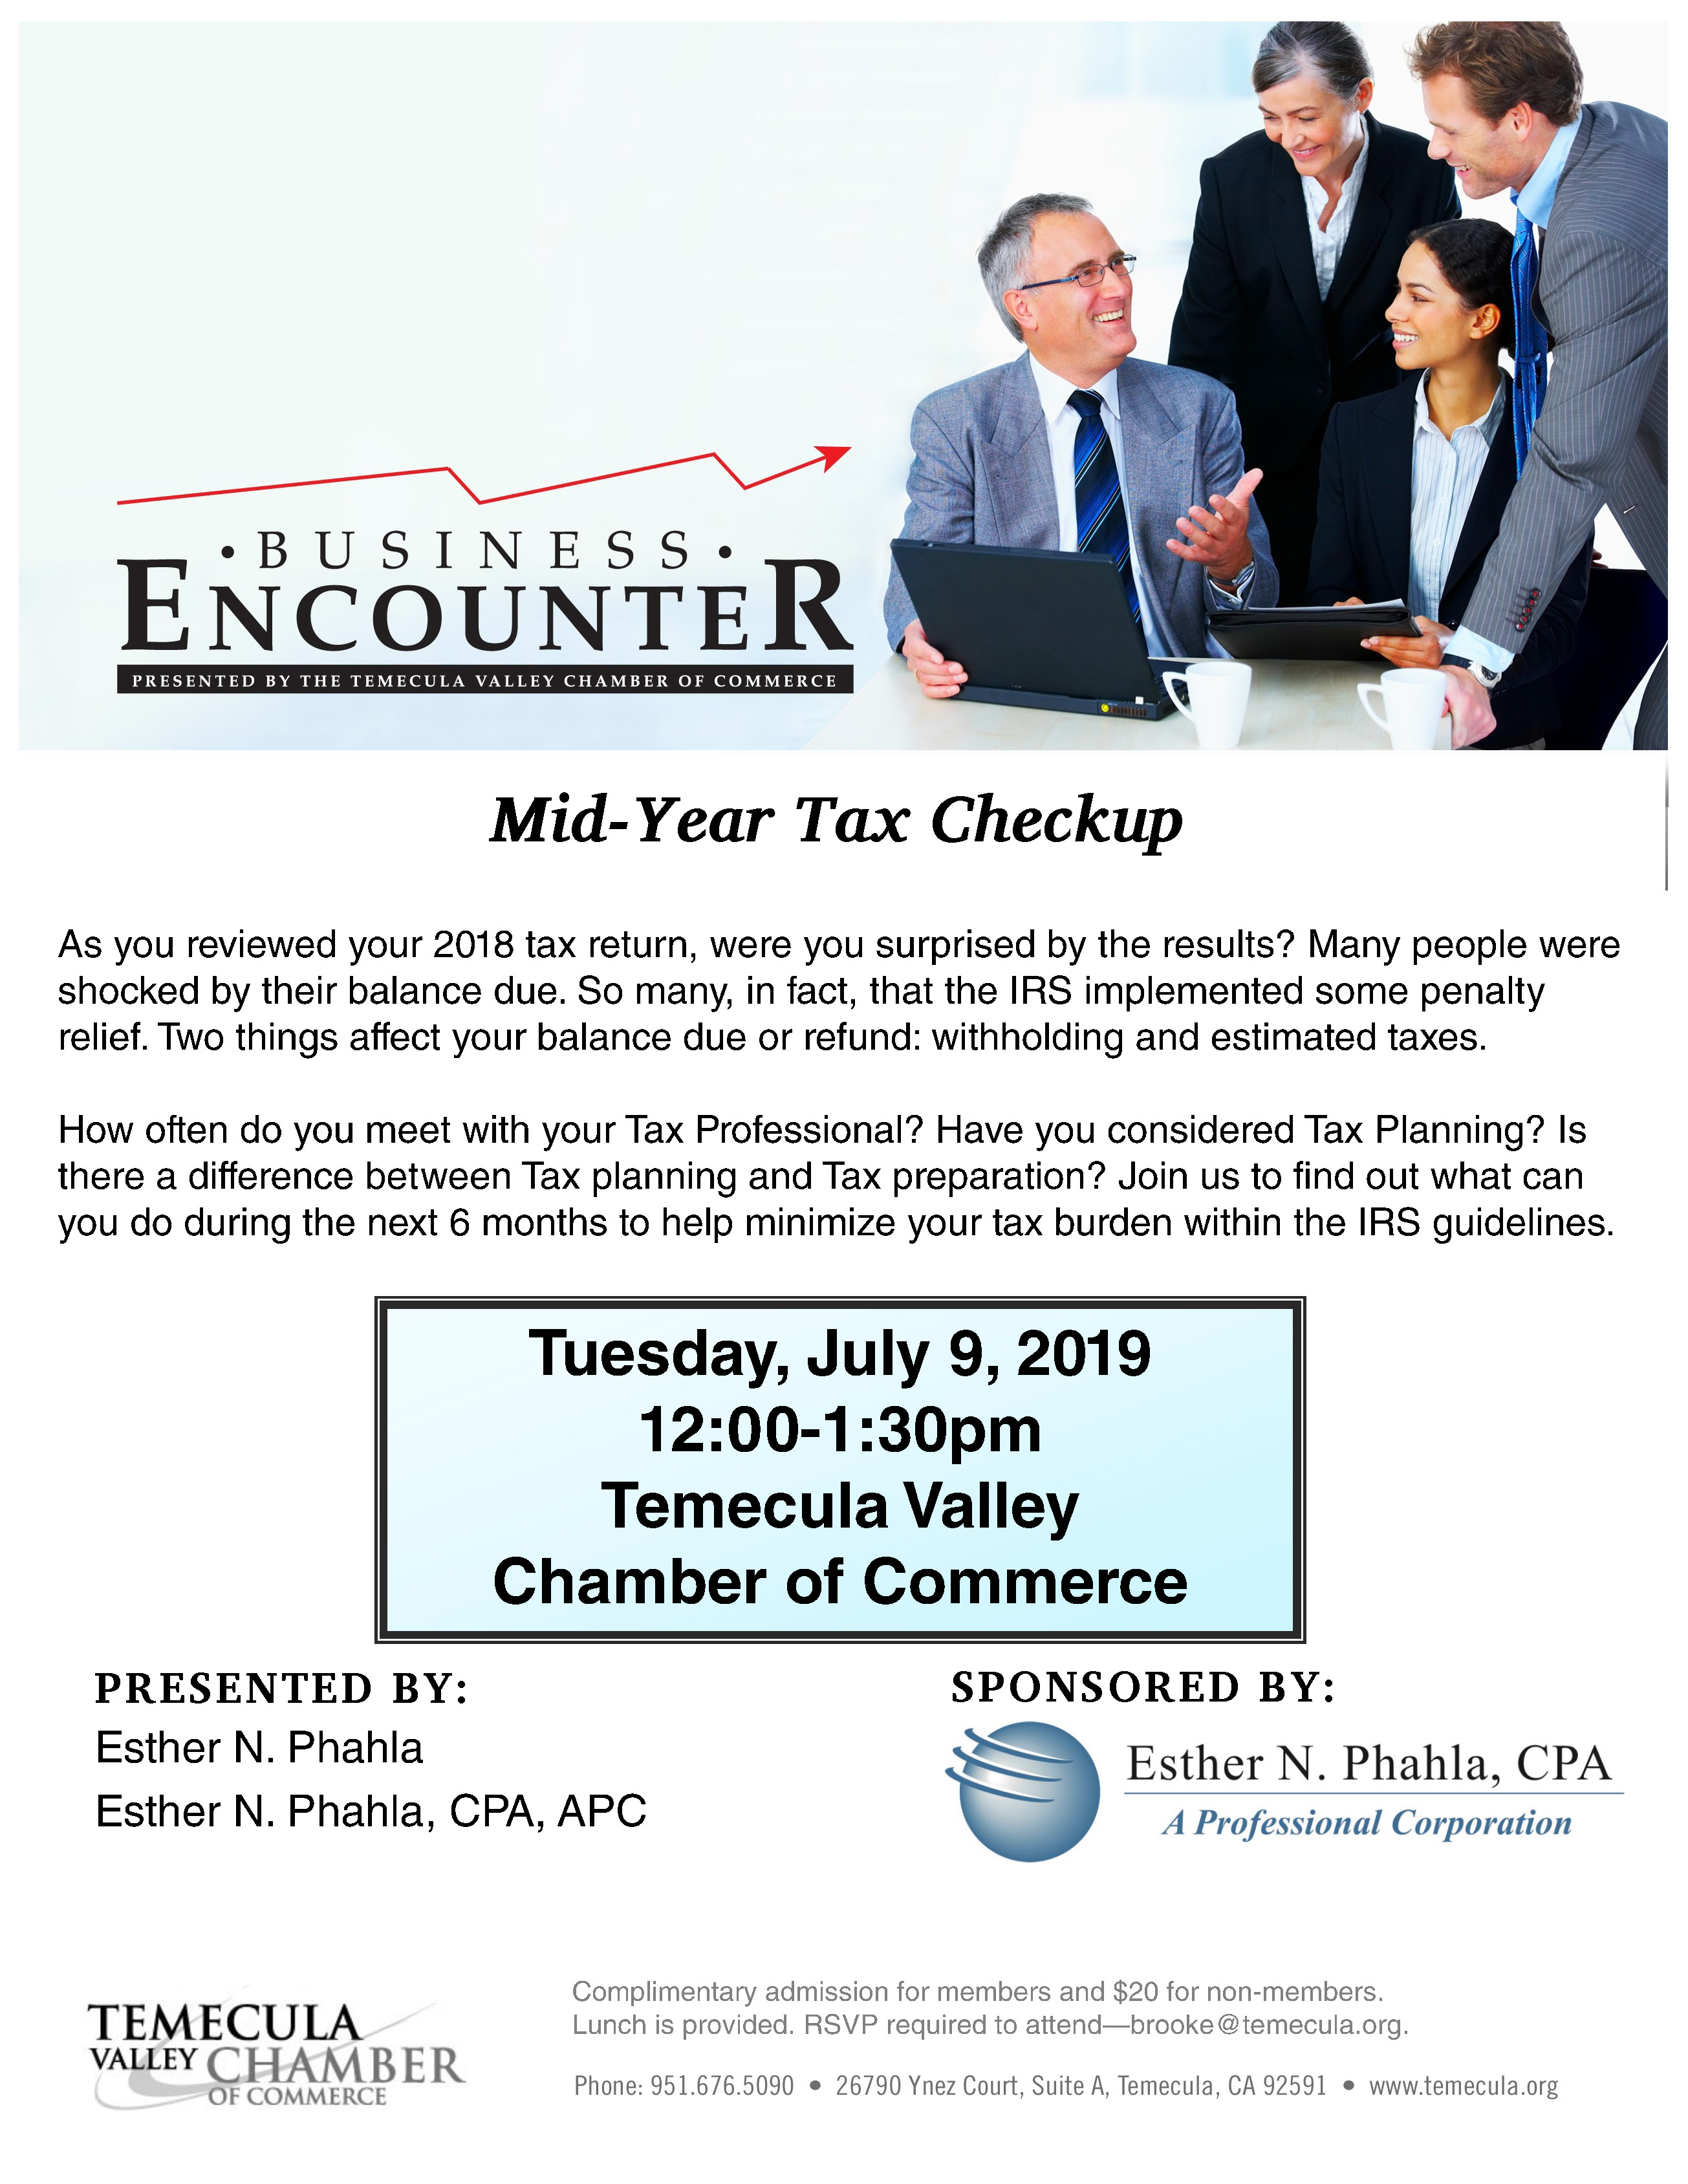 Business Encounter - Mid-Year Tax Checkup @ Temecula Valley Chamber of Commerce